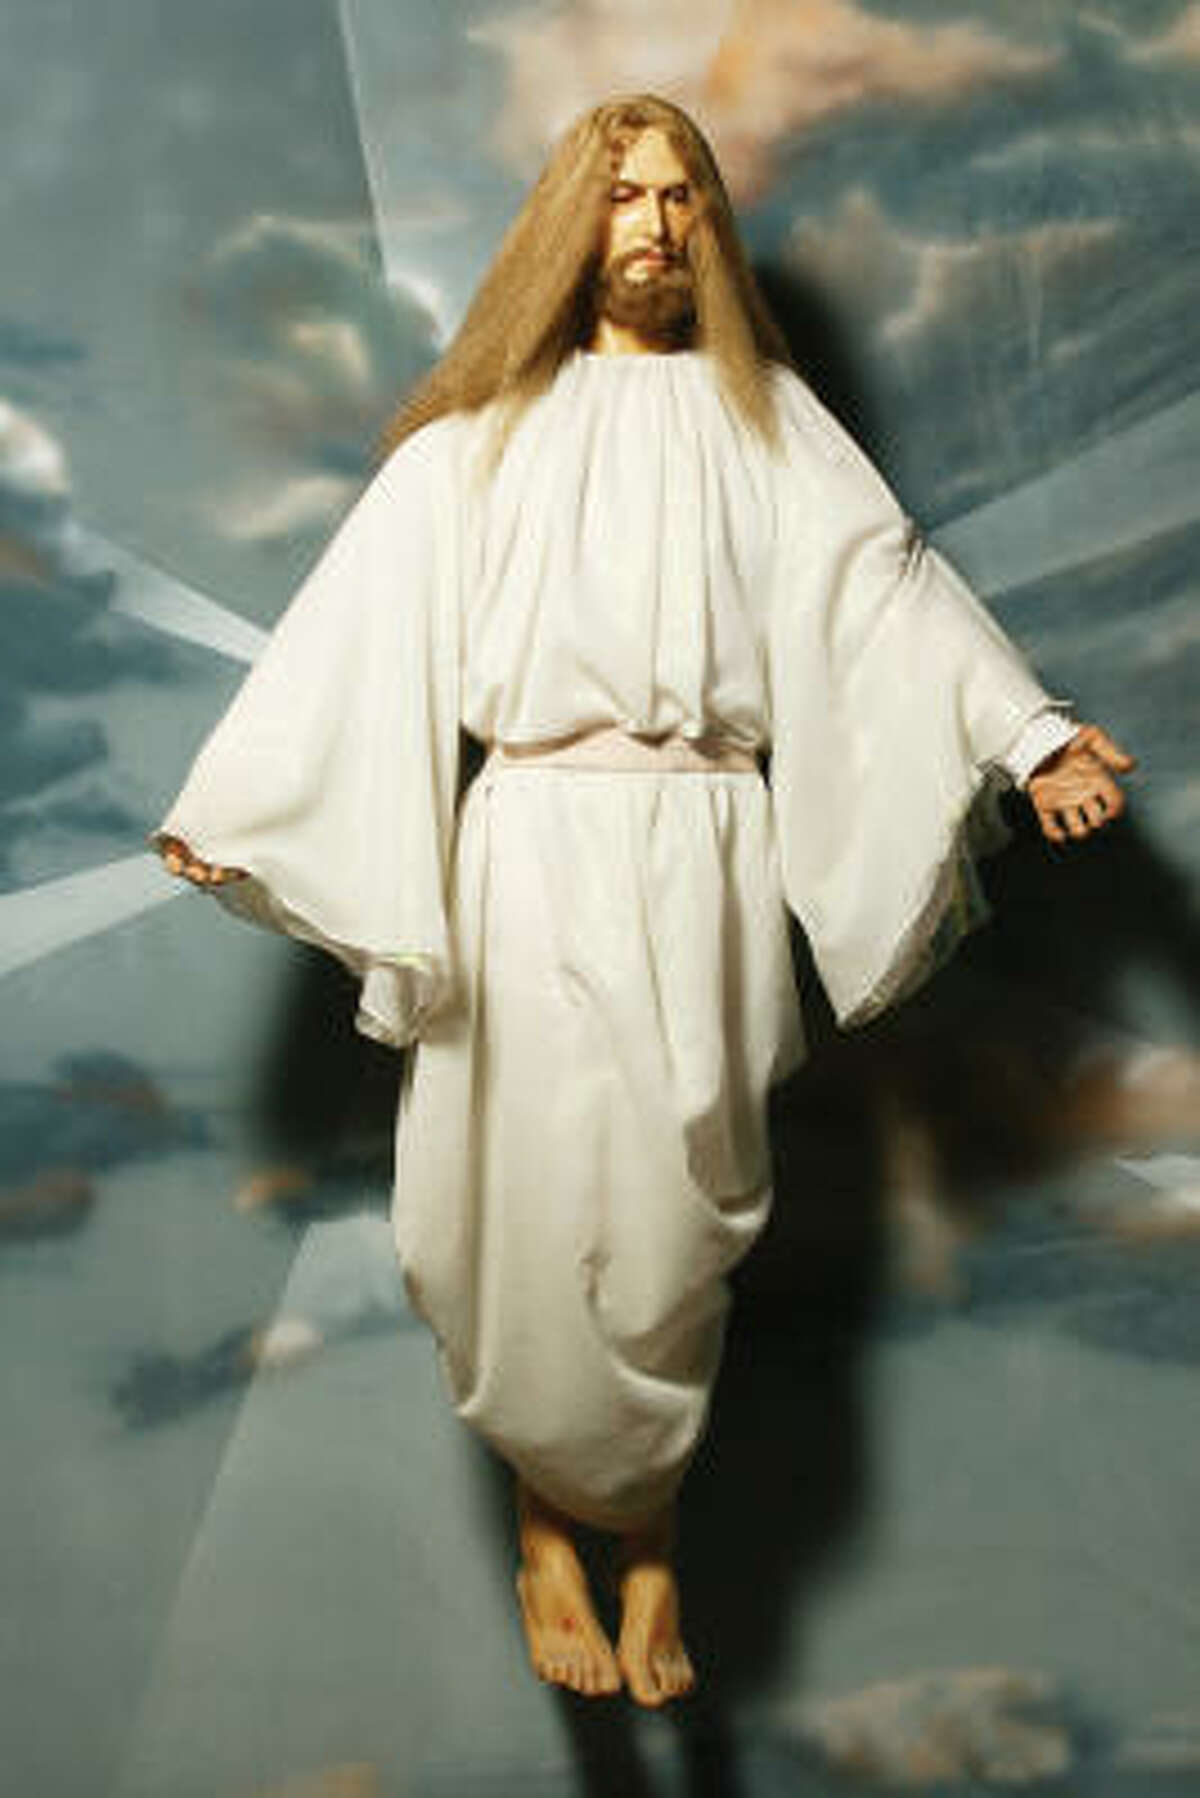 This wax statue of a resurrected Jesus is expected to sell for between $2,000 and $3,000. Bid here.